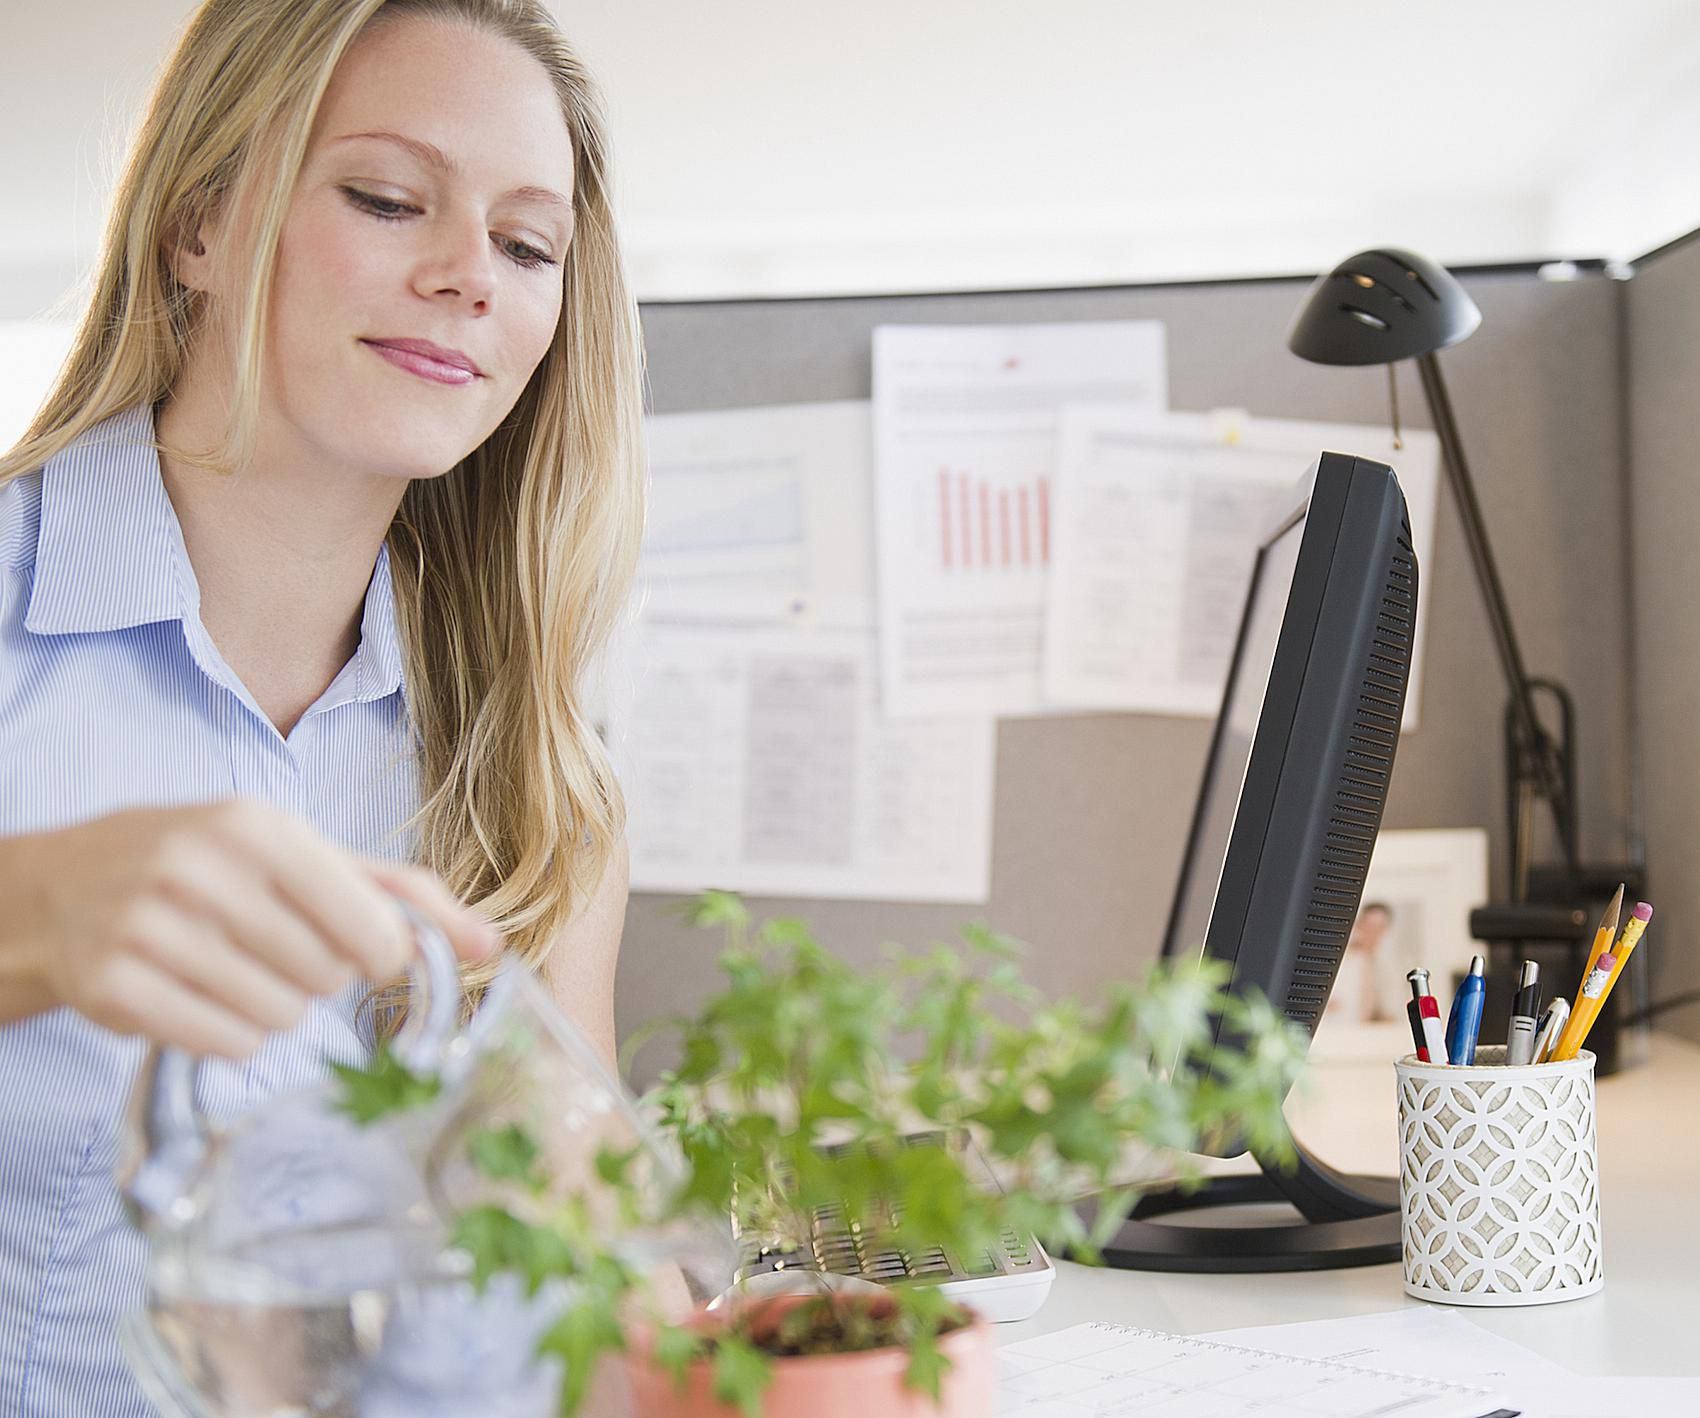 How Can I Create Good Feng Shui in My Office Cubicle